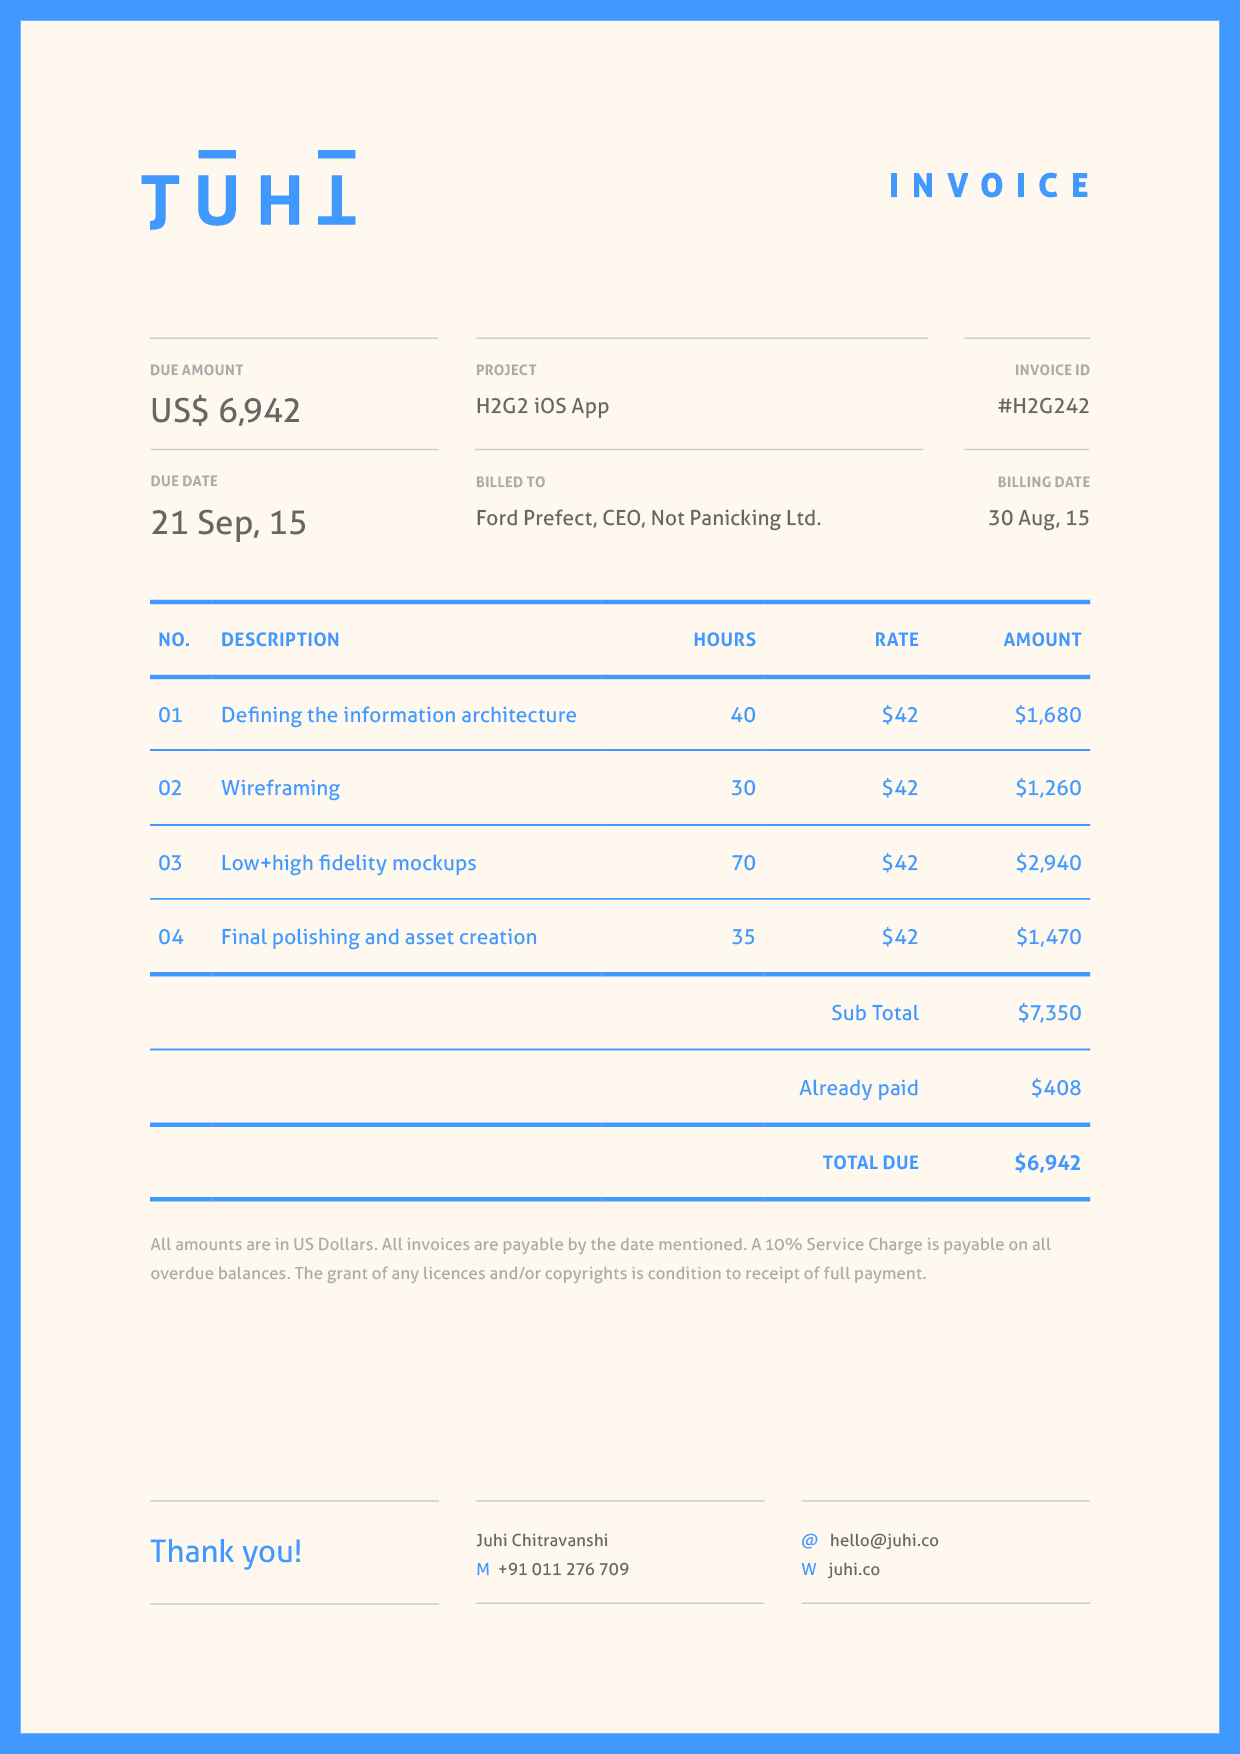 Aaaaeroincus  Unusual Dont Hold Back On Your Invoice  Inspiring Designs  With Goodlooking Invoice By Juhi Chitravanshi Follow With Breathtaking Business Invoice Also Definition Of Invoice In Addition Microsoft Invoice Template And Invoice To Me As Well As Woocommerce Pdf Invoice Additionally Whats A Invoice From Inspirationfeedcom With Aaaaeroincus  Goodlooking Dont Hold Back On Your Invoice  Inspiring Designs  With Breathtaking Invoice By Juhi Chitravanshi Follow And Unusual Business Invoice Also Definition Of Invoice In Addition Microsoft Invoice Template From Inspirationfeedcom